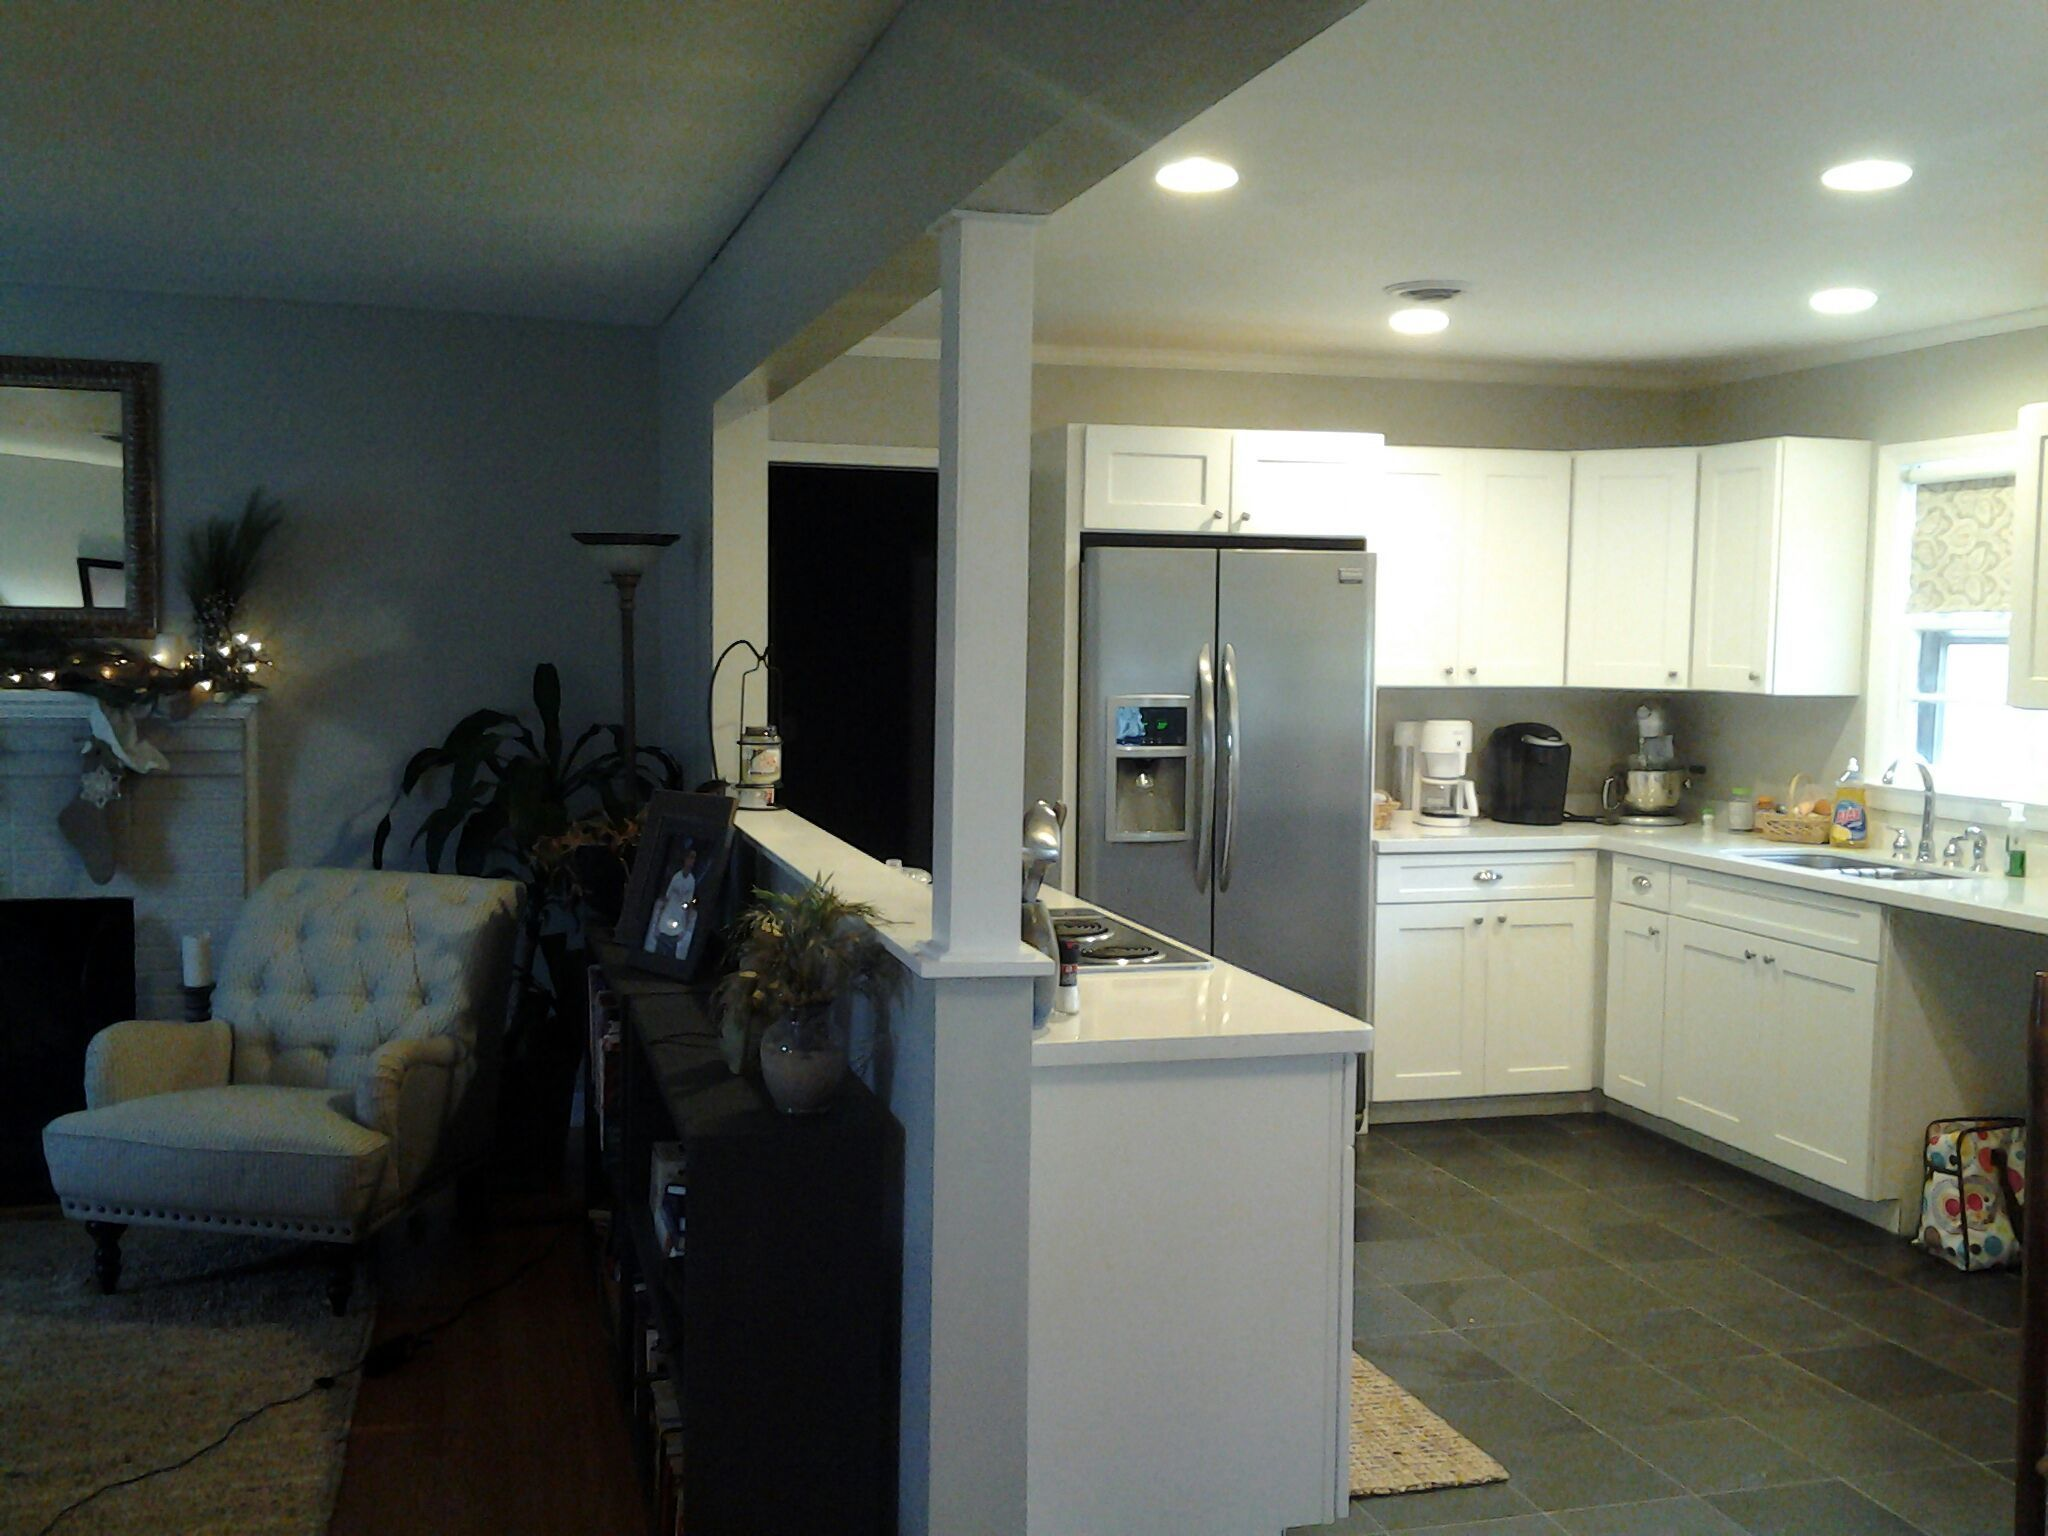 Wall Between Living Room And Kitchen Was Opened Up Engaged Column Added For Open Kitchen And Living Room Open Concept Kitchen Living Room Kitchen Design Open Opening up a wall between kitchen and living room